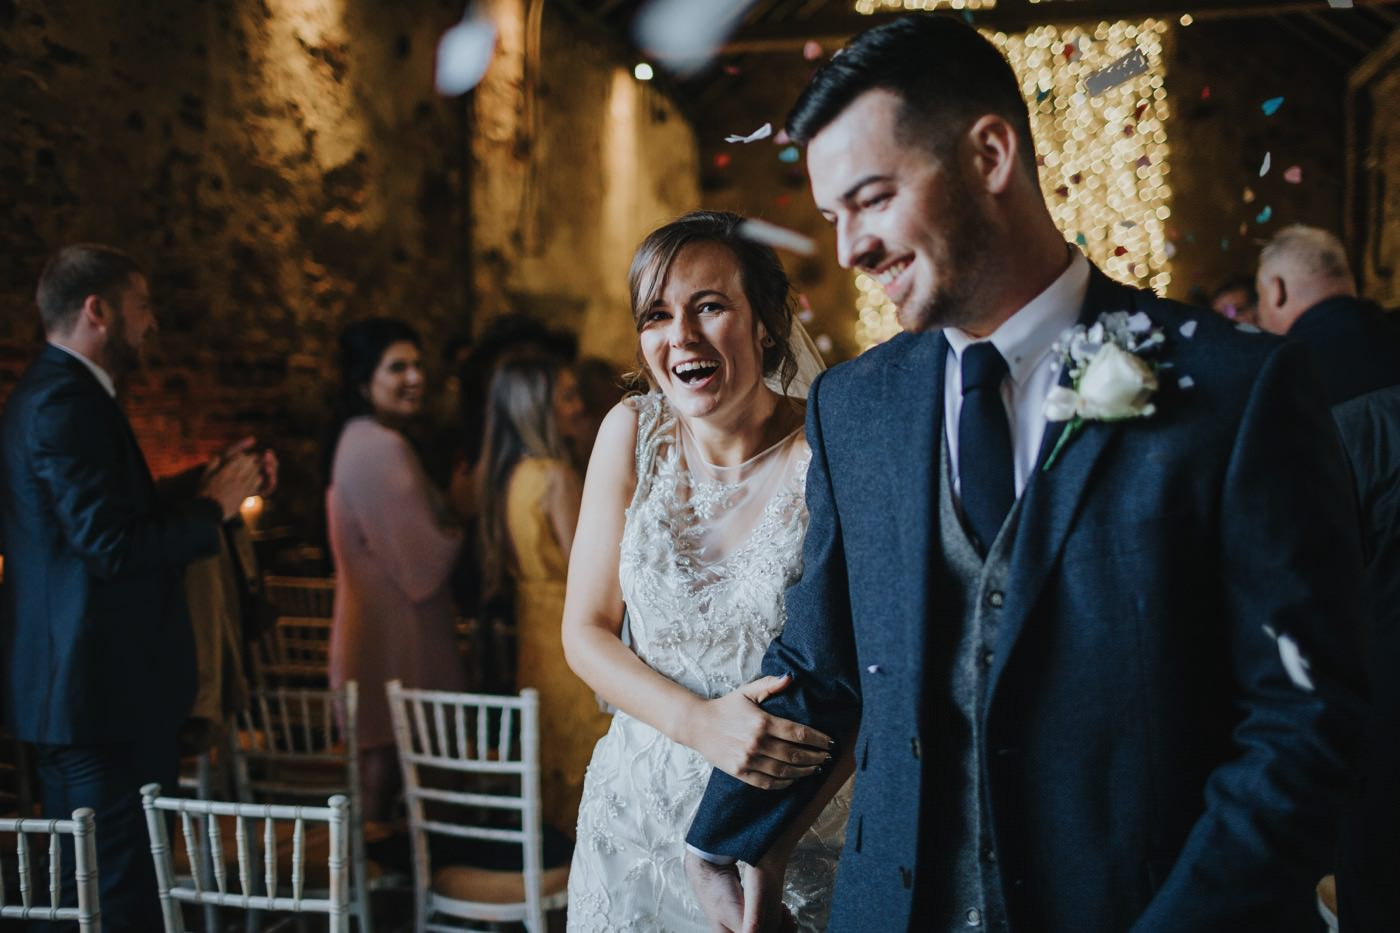 Emma & David | The Normans York wedding 194